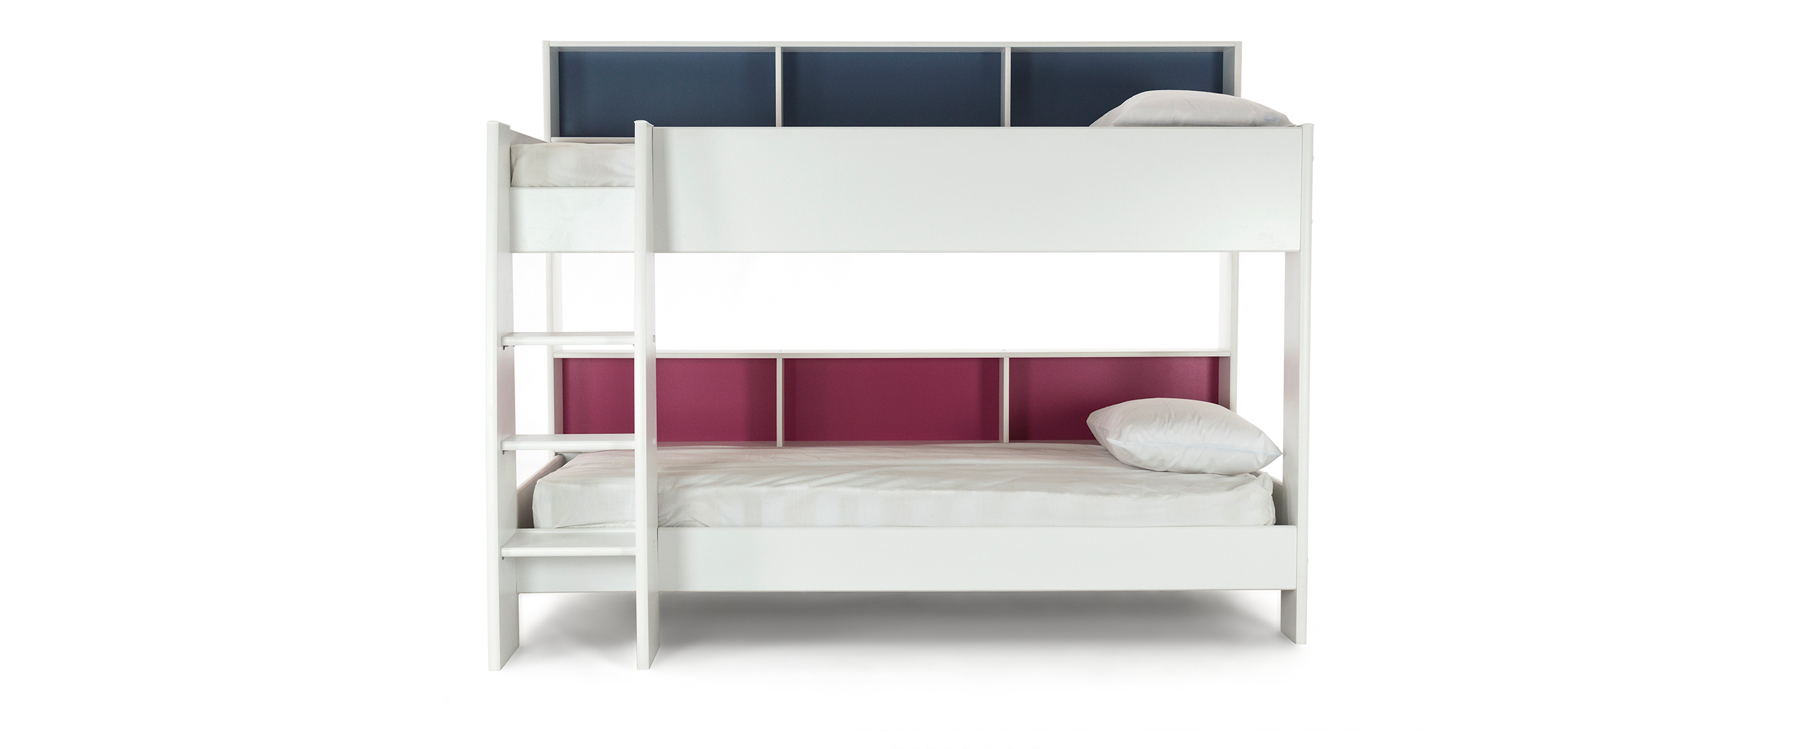 Kids Childrens Toddler Bed Bunk Beds Ez Living Northern Ireland